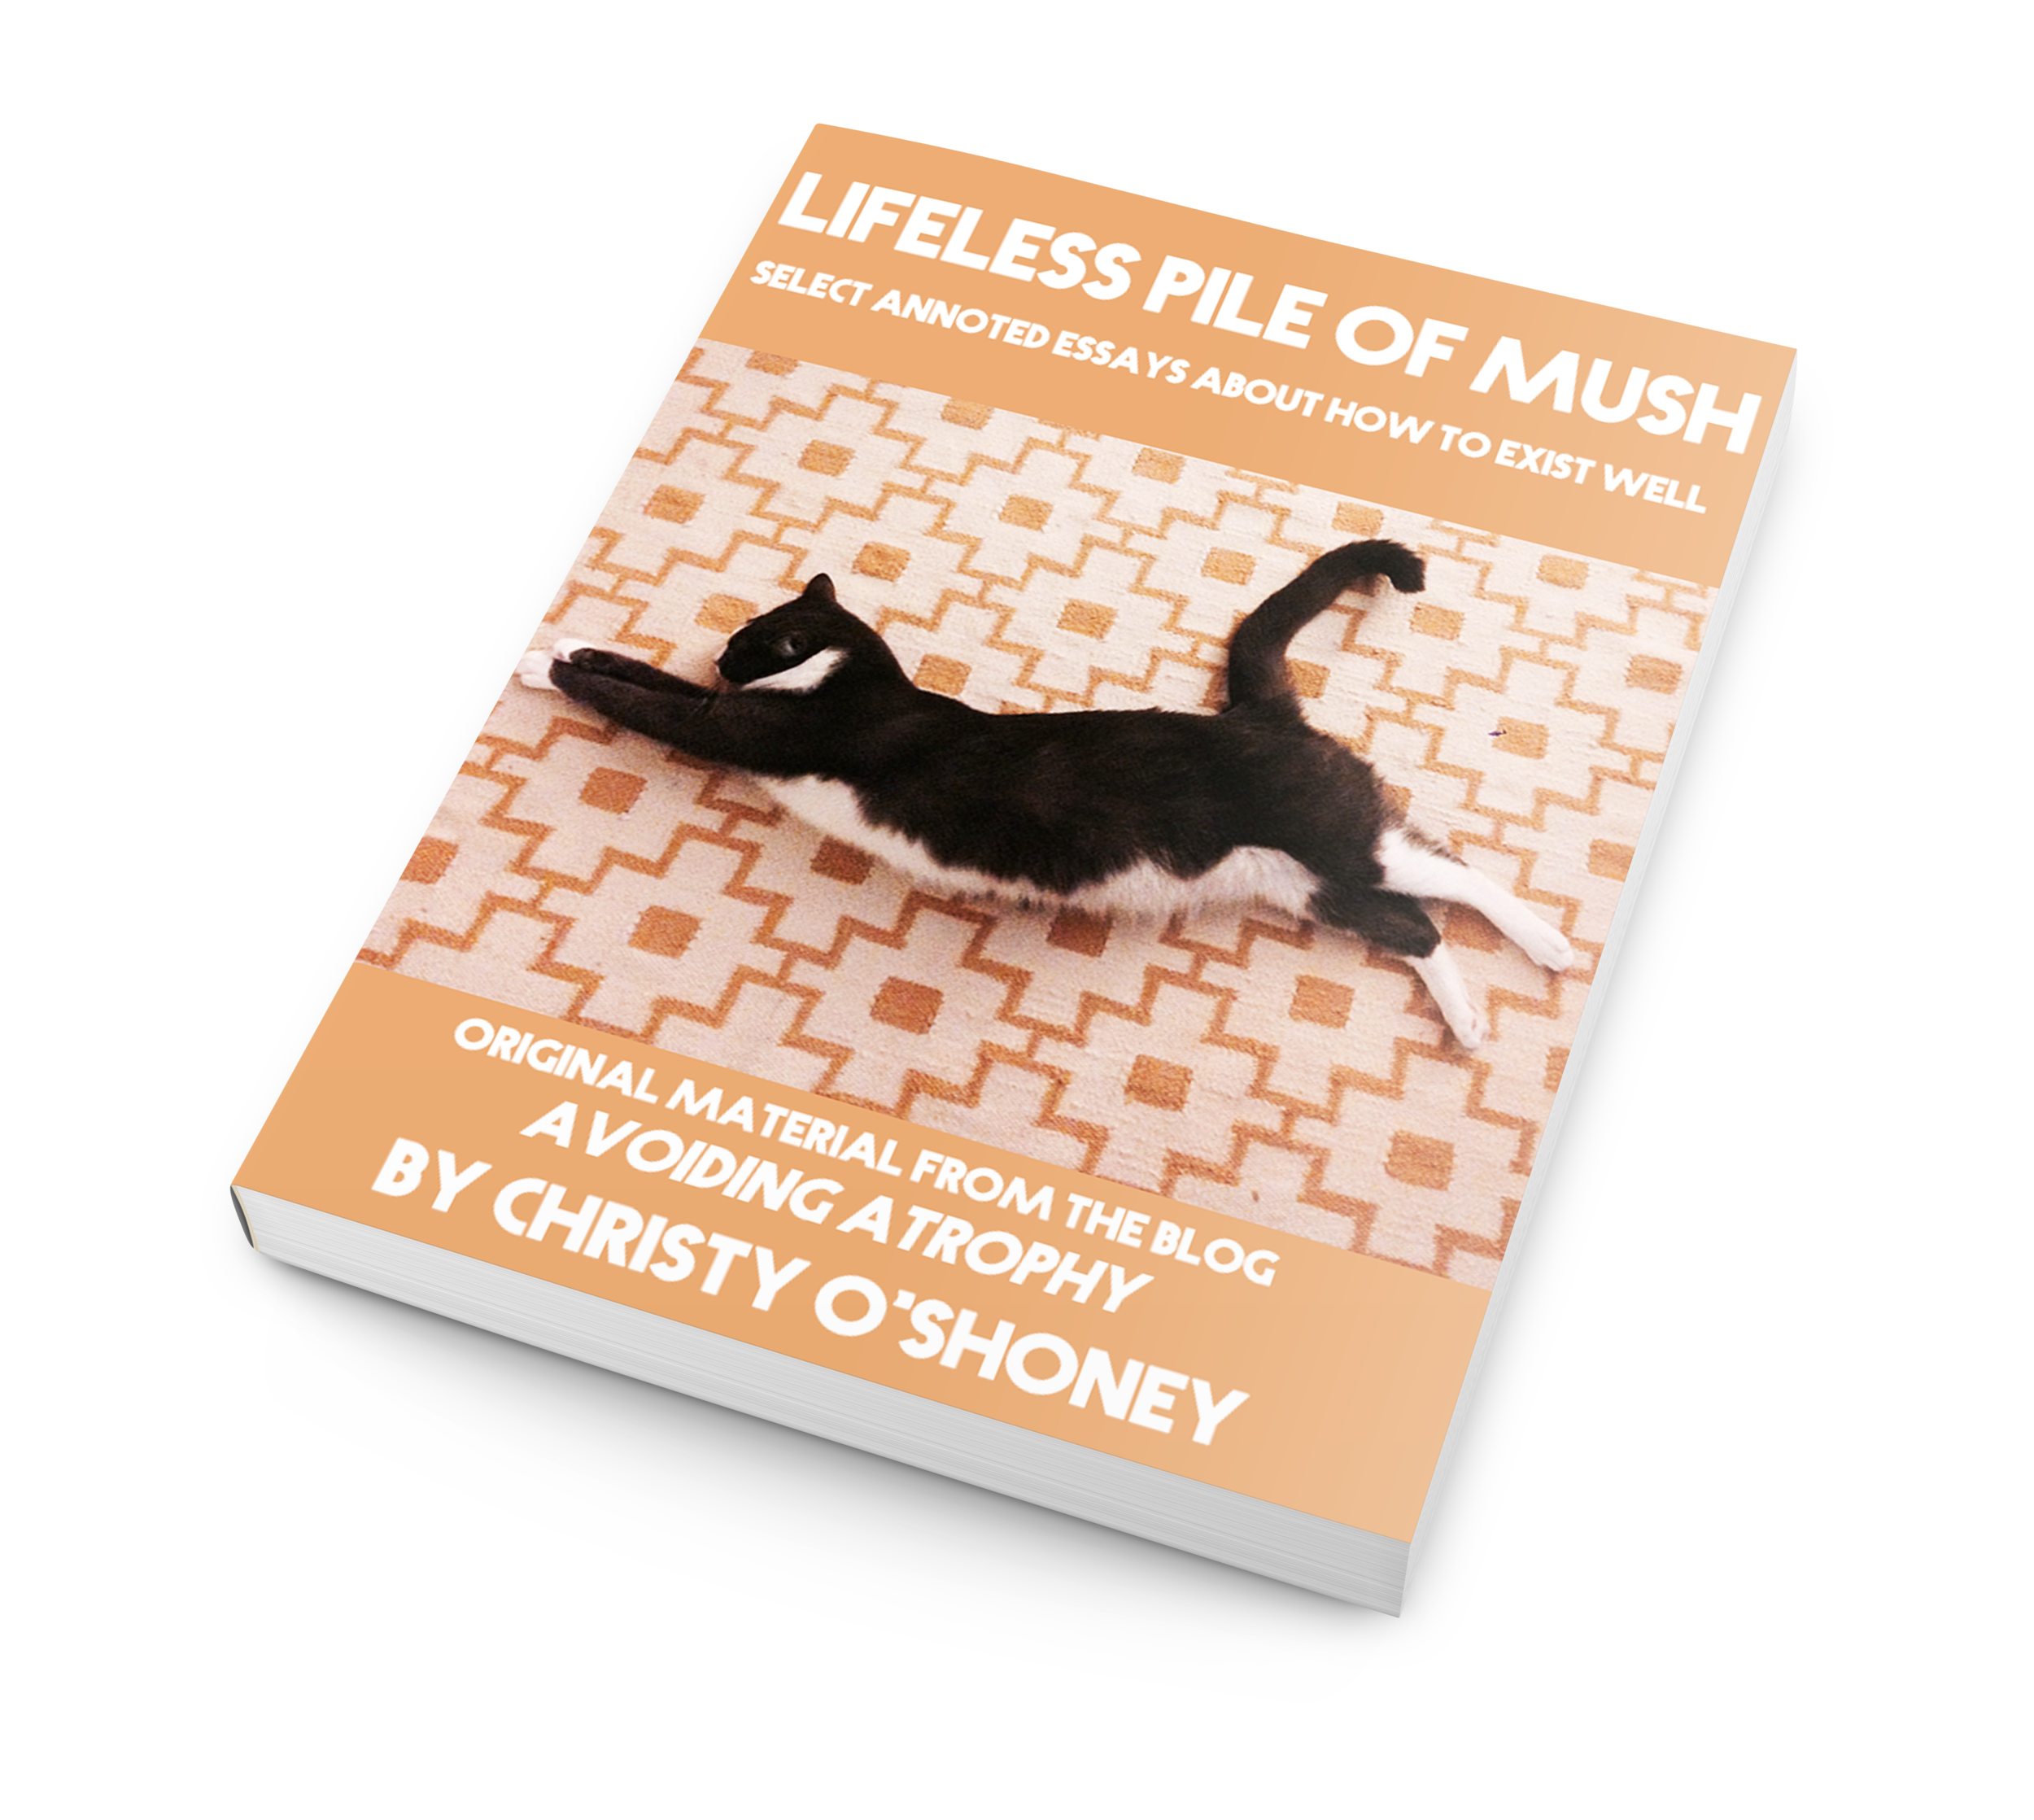 "Pre-order ""Lifeless Pile of Mush,"" the book about how to exist well from Christy O'Shoney"